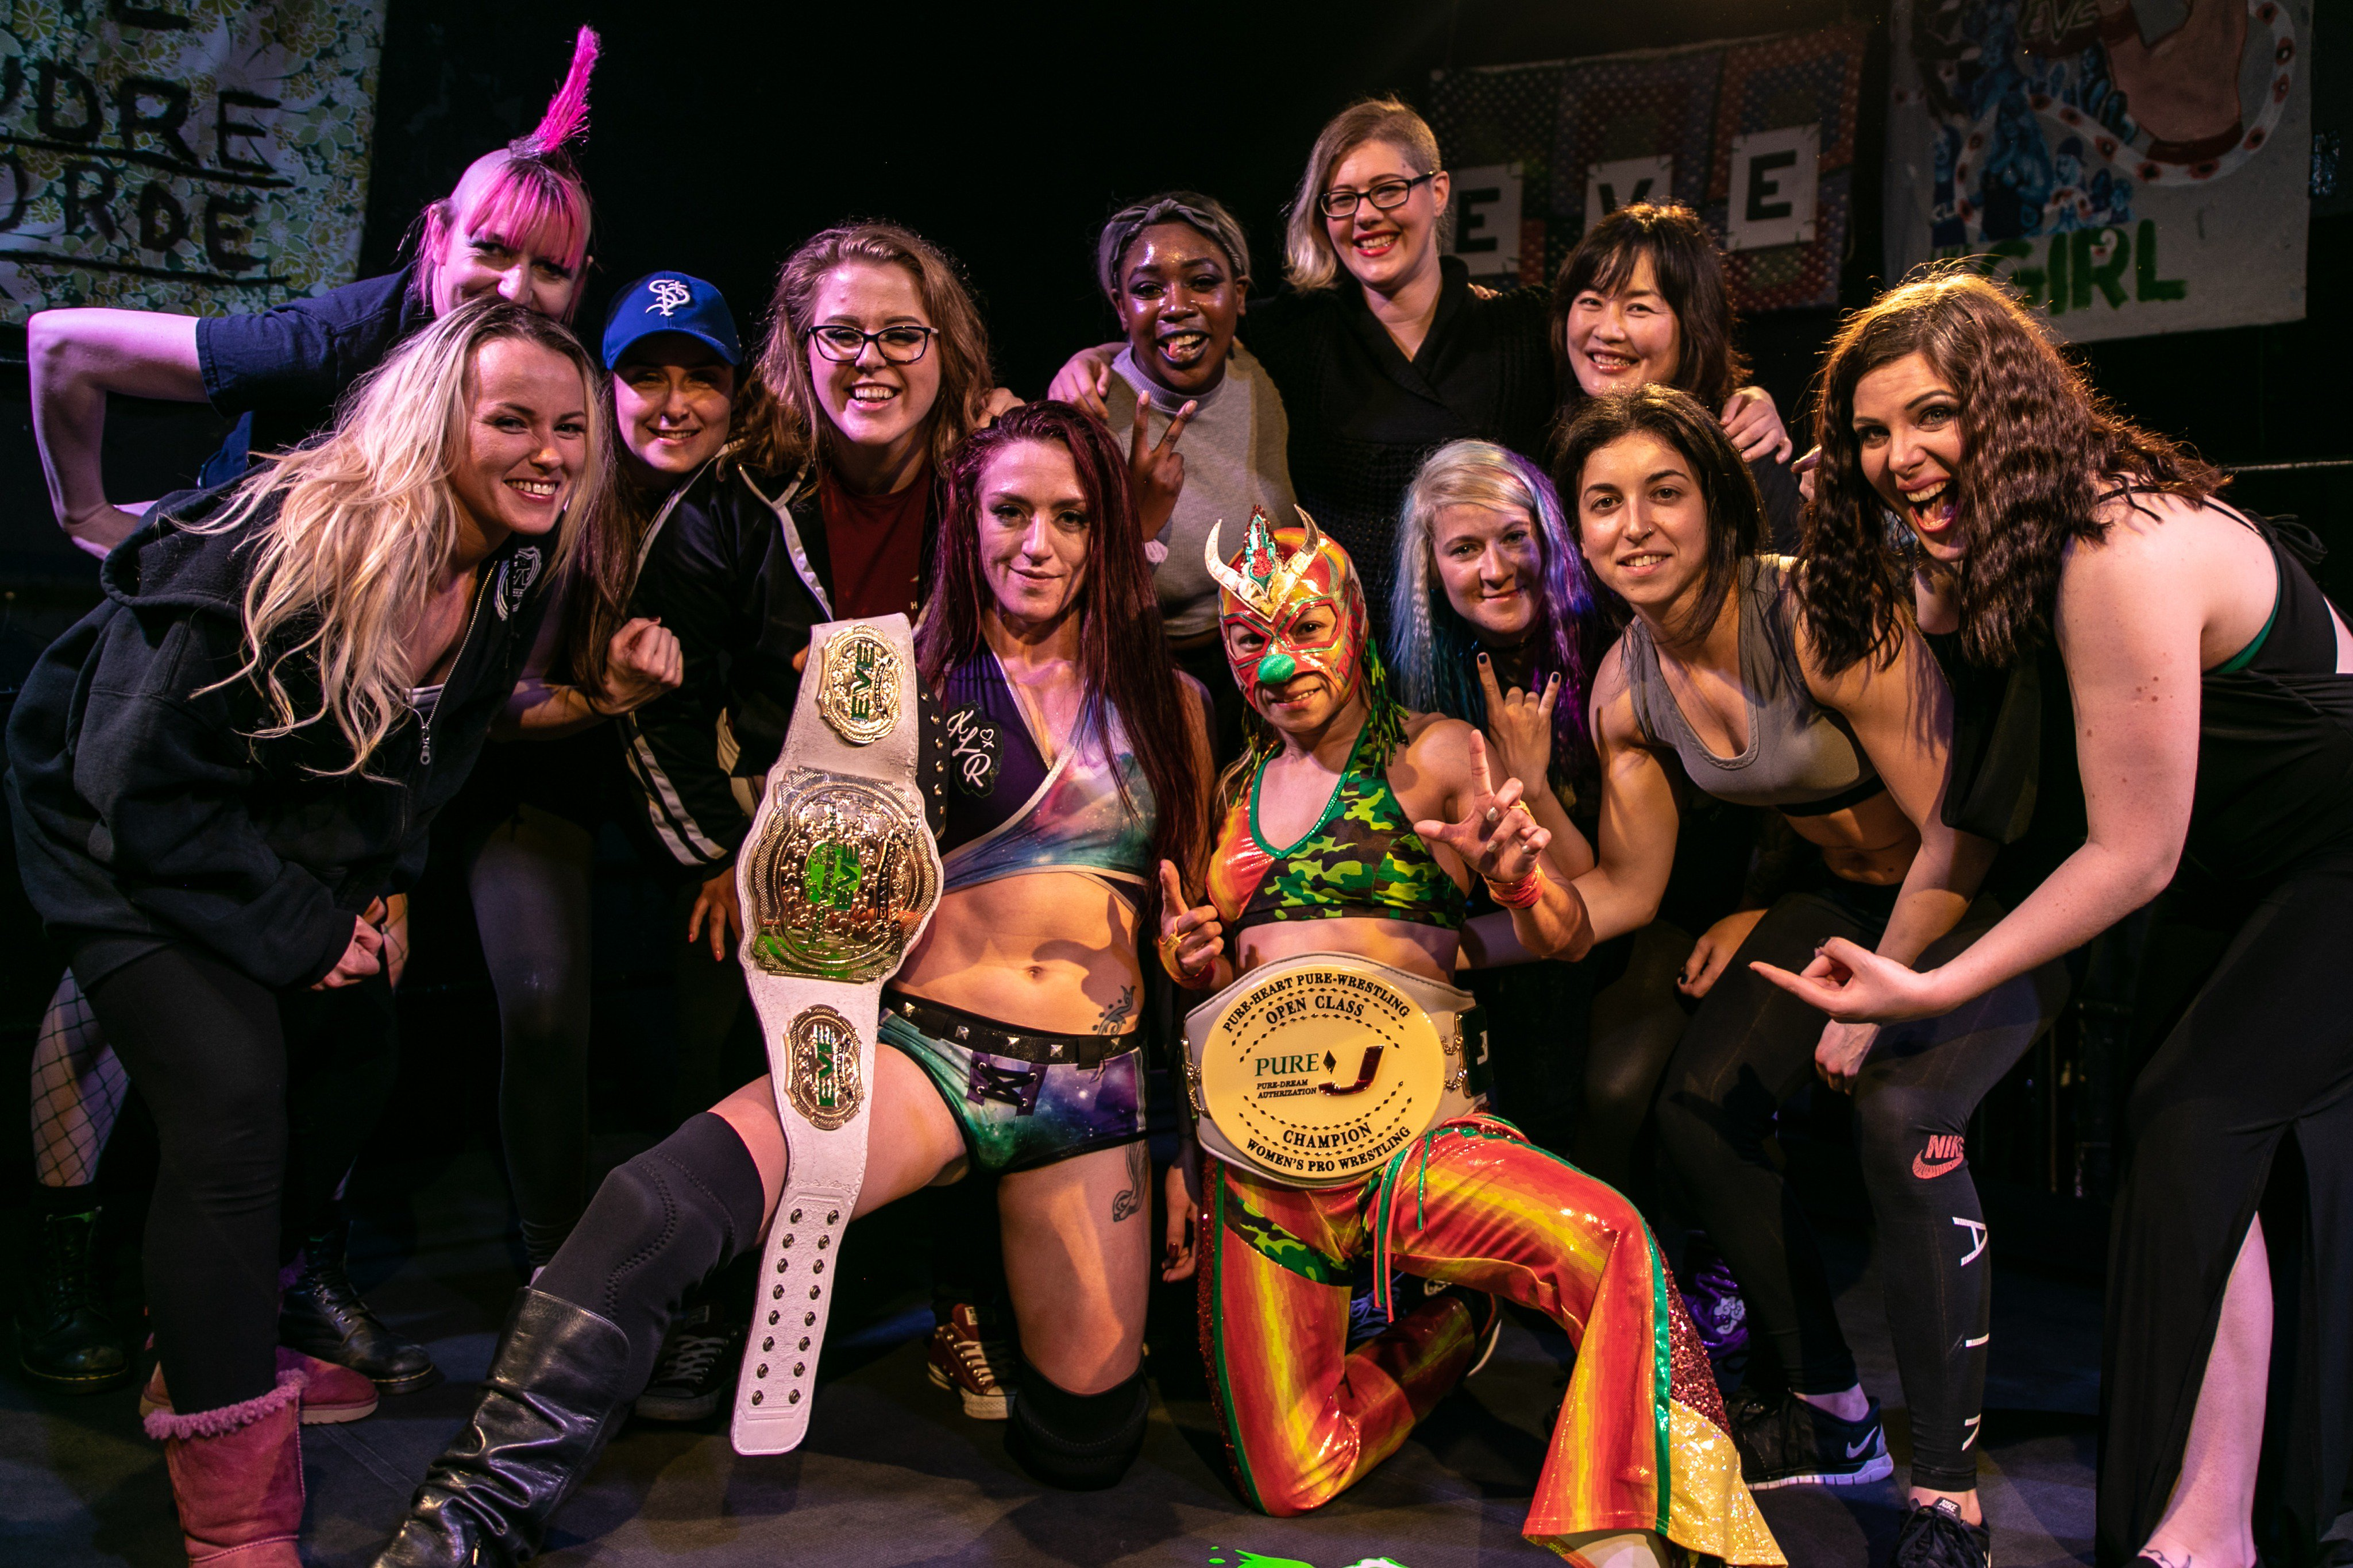 Make the Jump from WWE with these Independent Women's Promotions